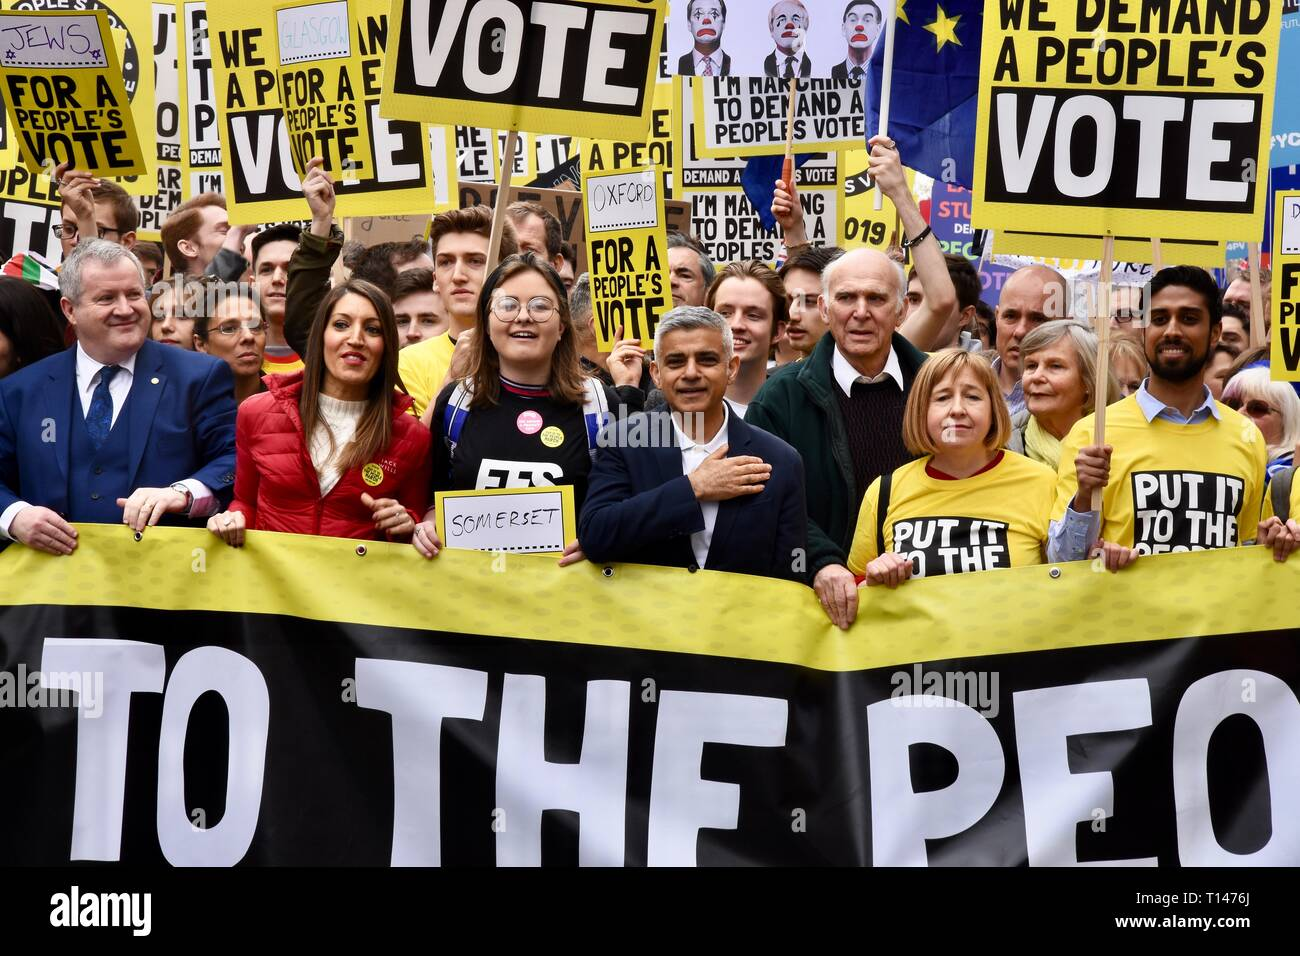 London, UK. 23rd March, 2019. Sadiq Khan, Mayor of London, Sir Vince Cable, People's Vote March, Piccadilly, London.UK Credit: michael melia/Alamy Live News - Stock Image